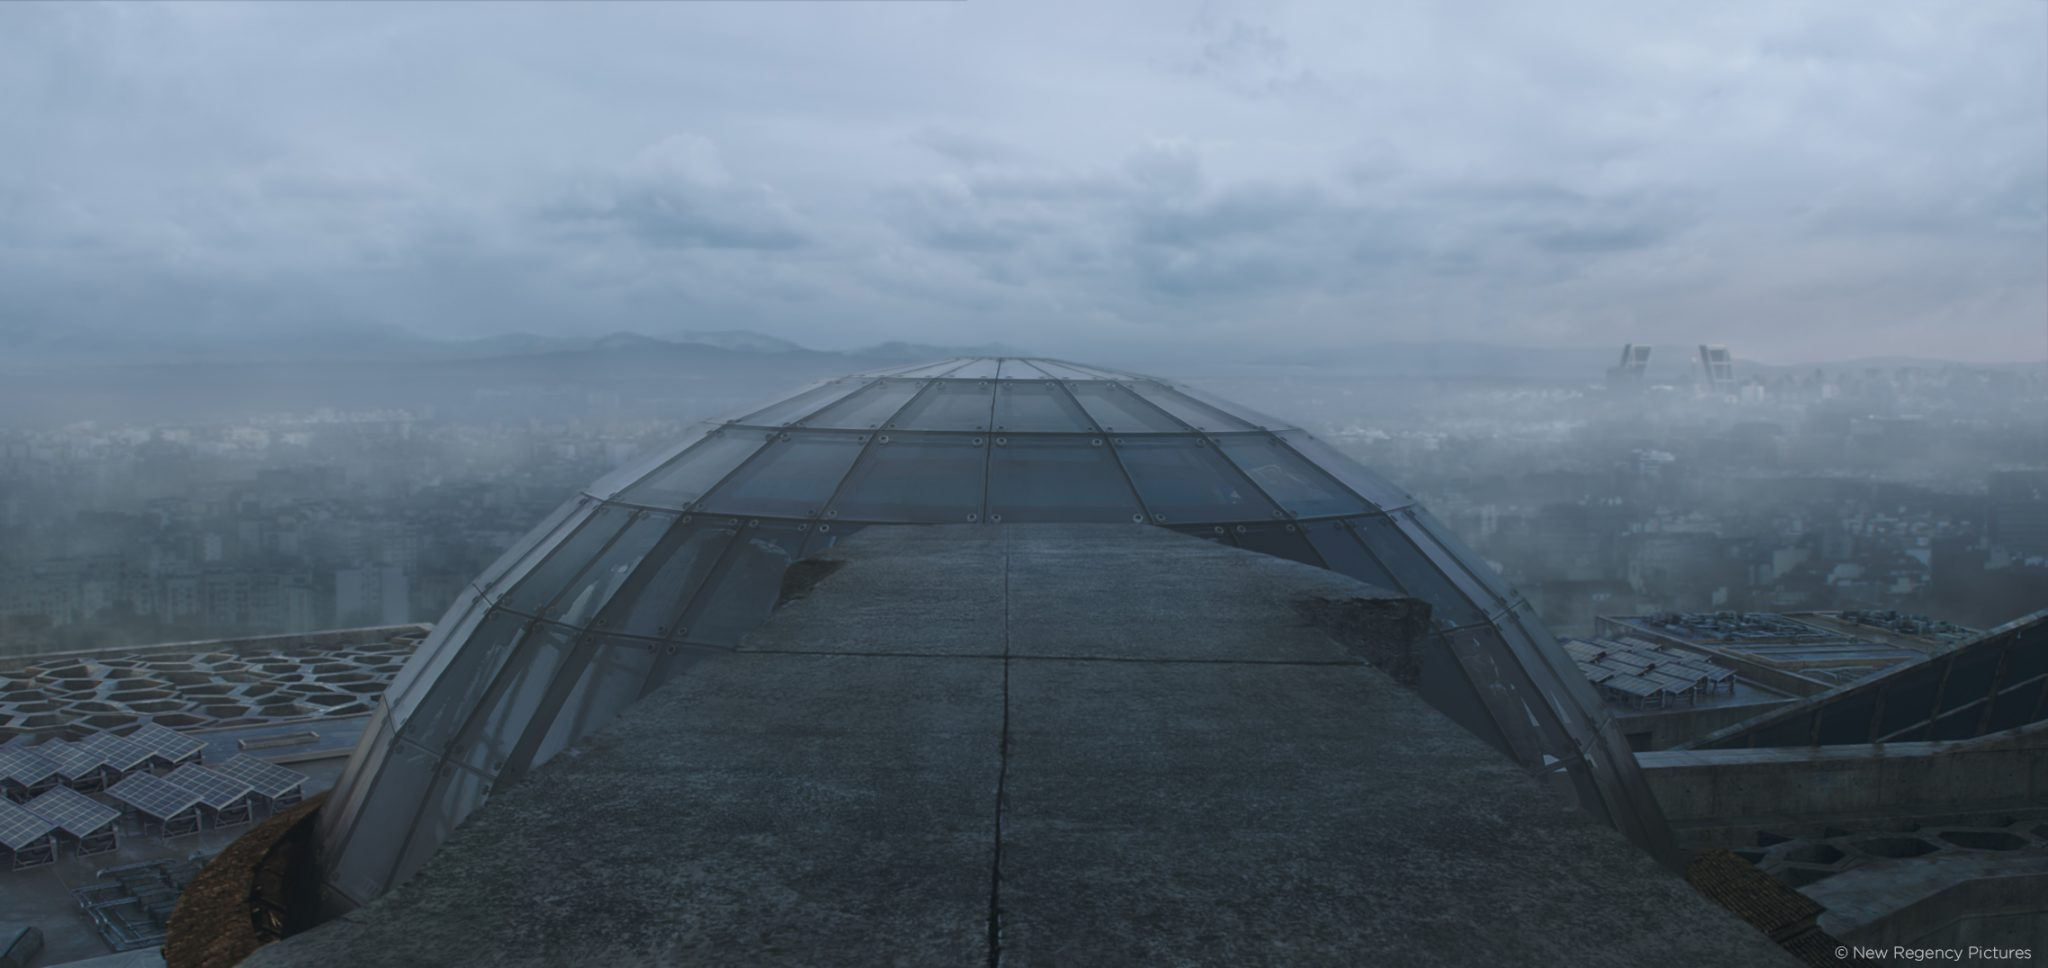 assassins-creed-fortress-dome